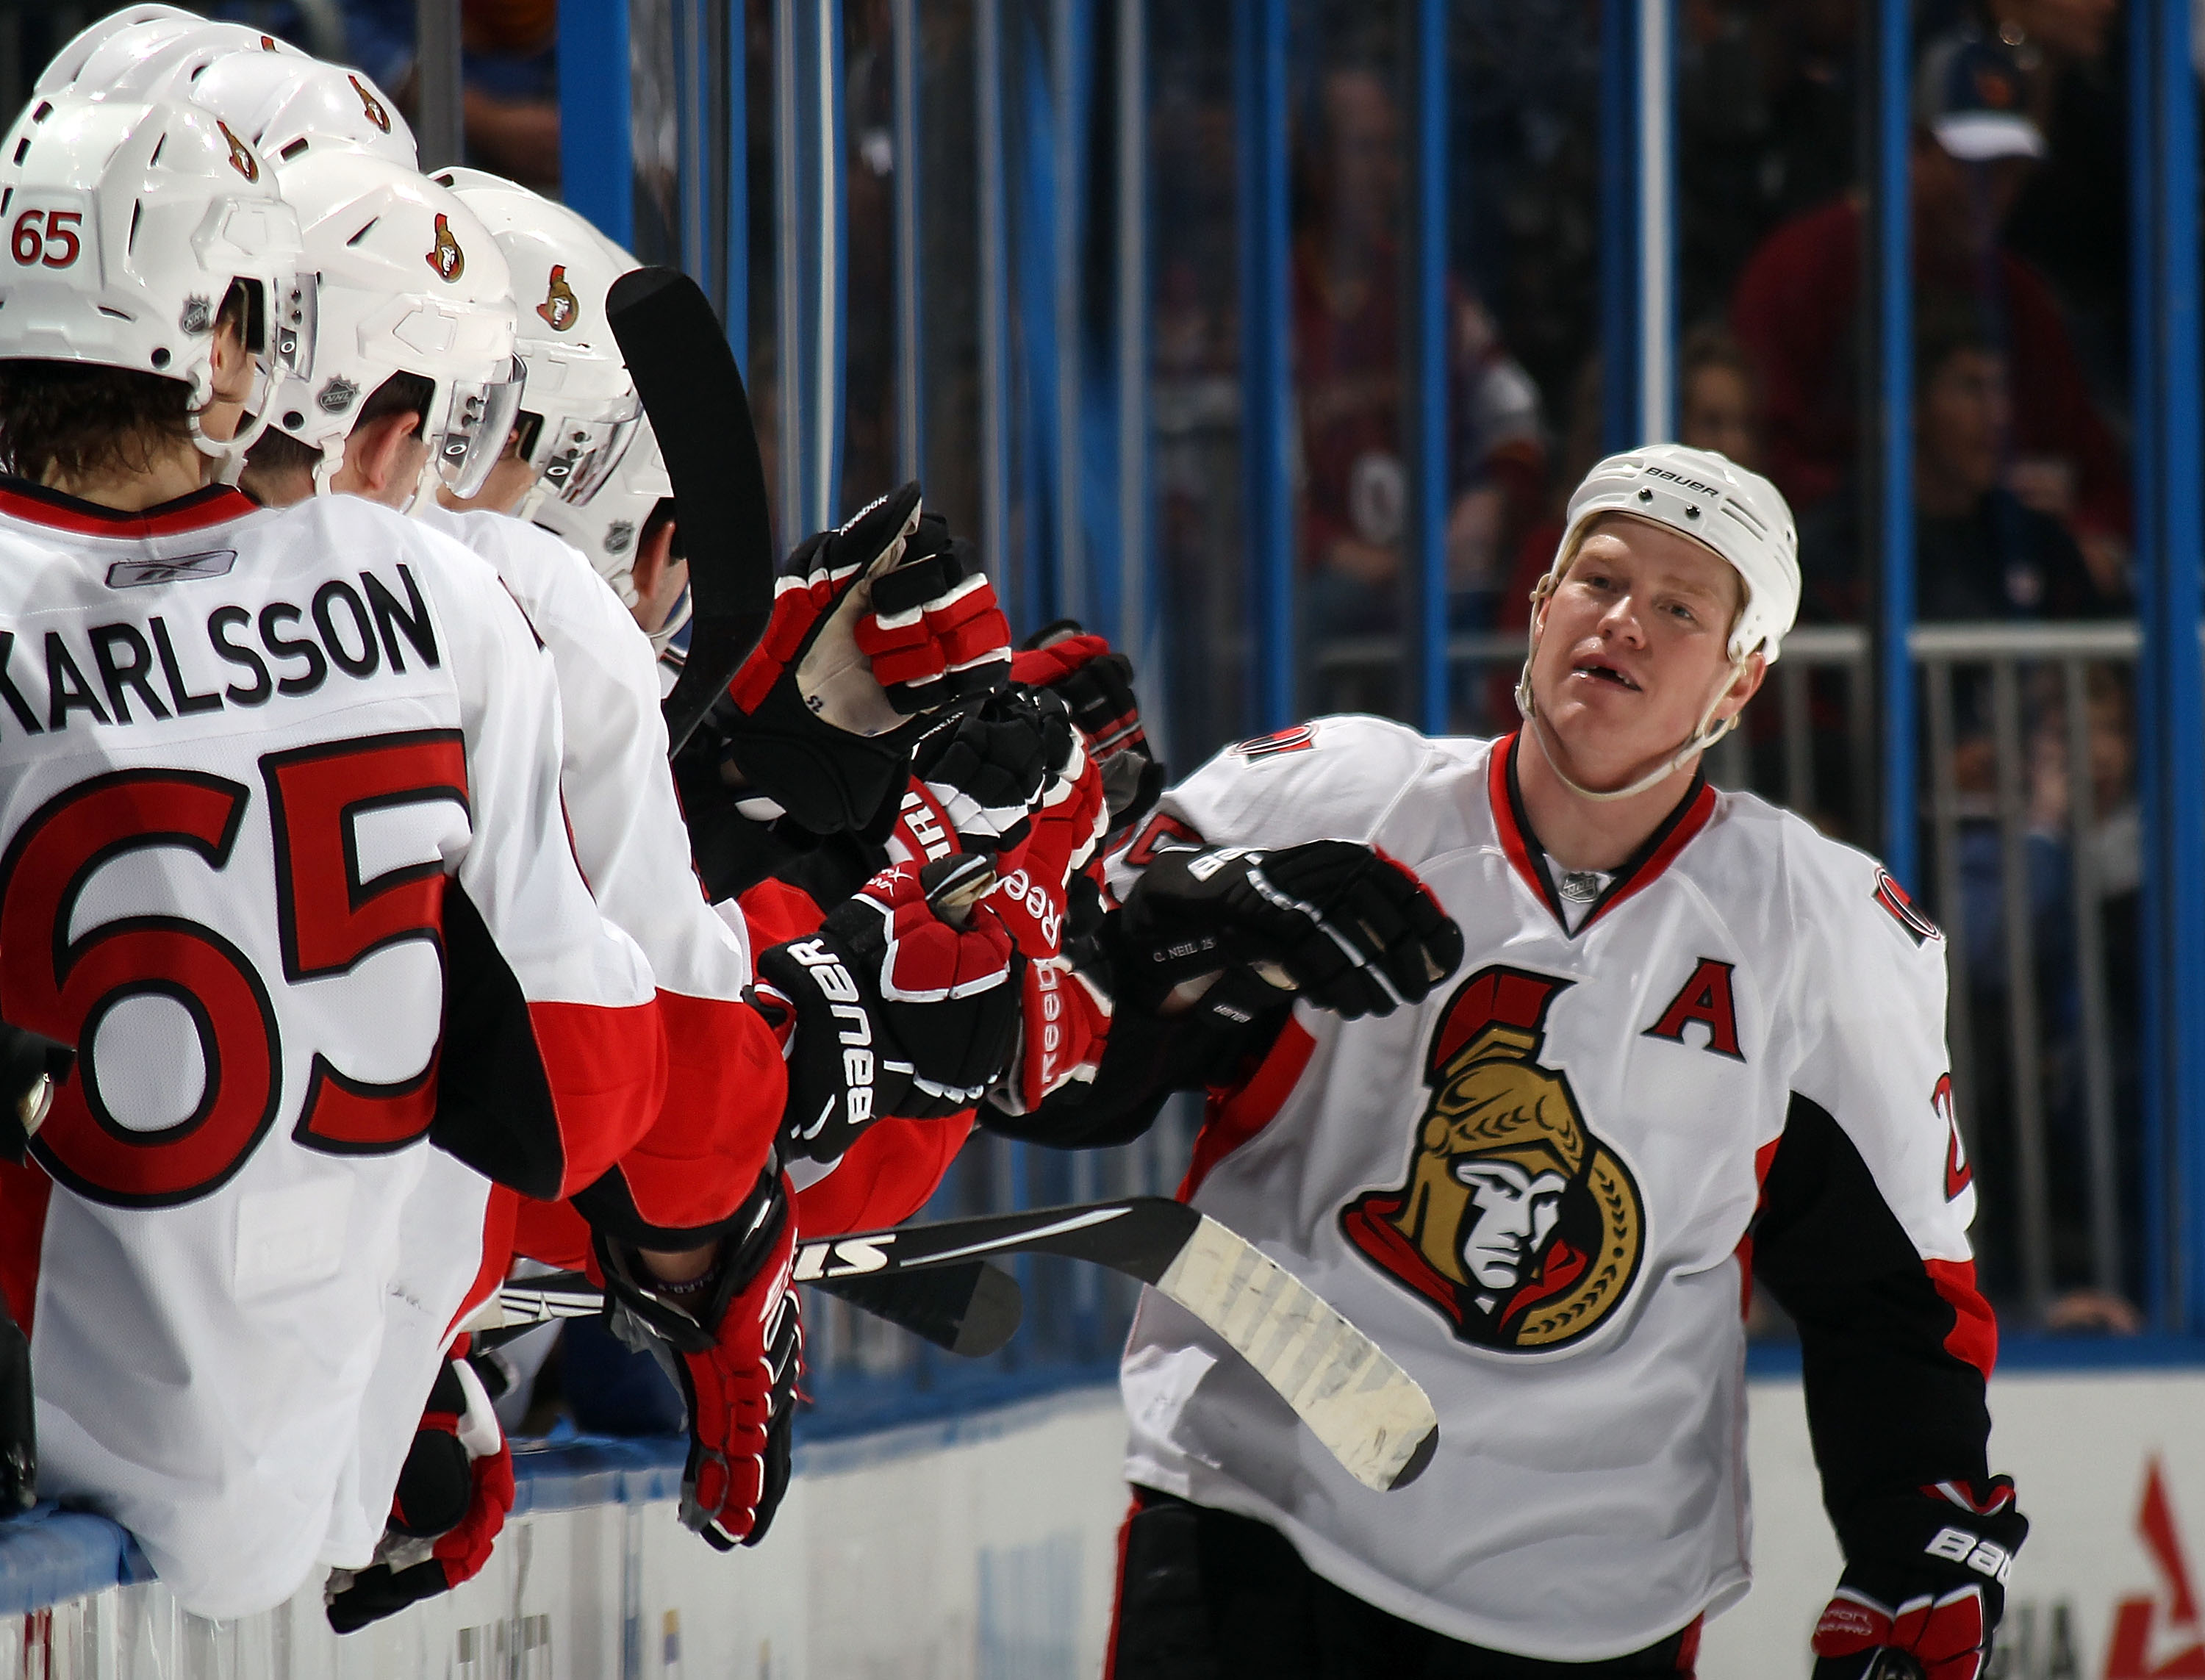 ATLANTA, GA - MARCH 27:  Chris Neil #25 of the Ottawa Senators celebrates his goal at 13:37 against the Atlanta Thrashers at the Philips Arena on March 27, 2011 in Atlanta, Georgia. (Photo by Bruce Bennett/Getty Images)